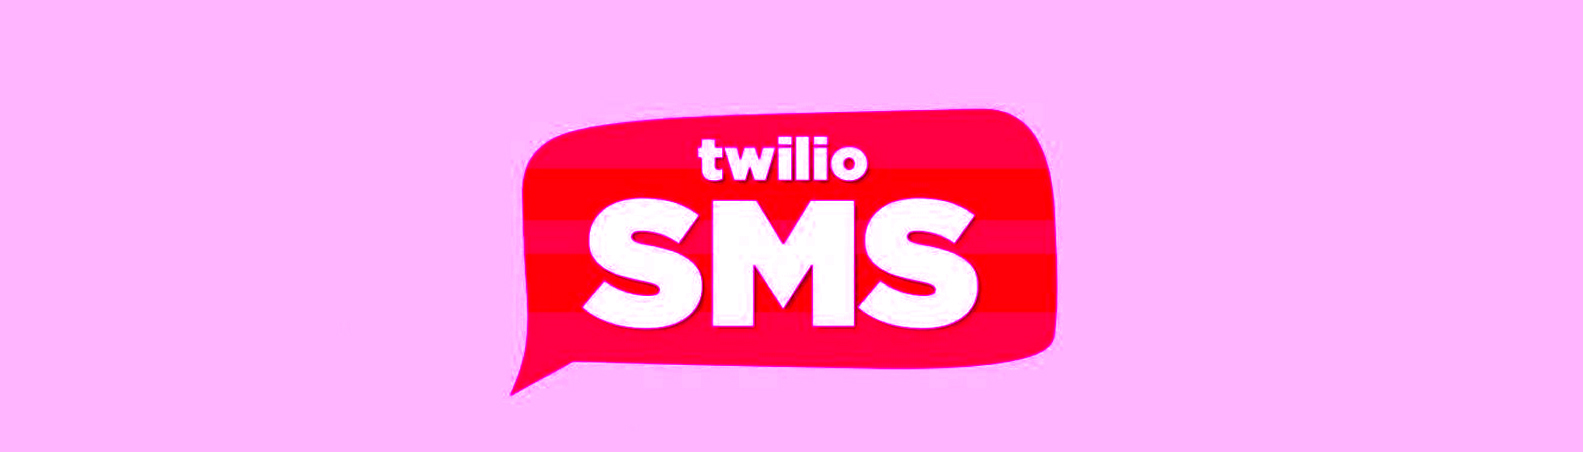 Send SMS and MMS Messages Using Twilio | Twilio SMS  MMS API